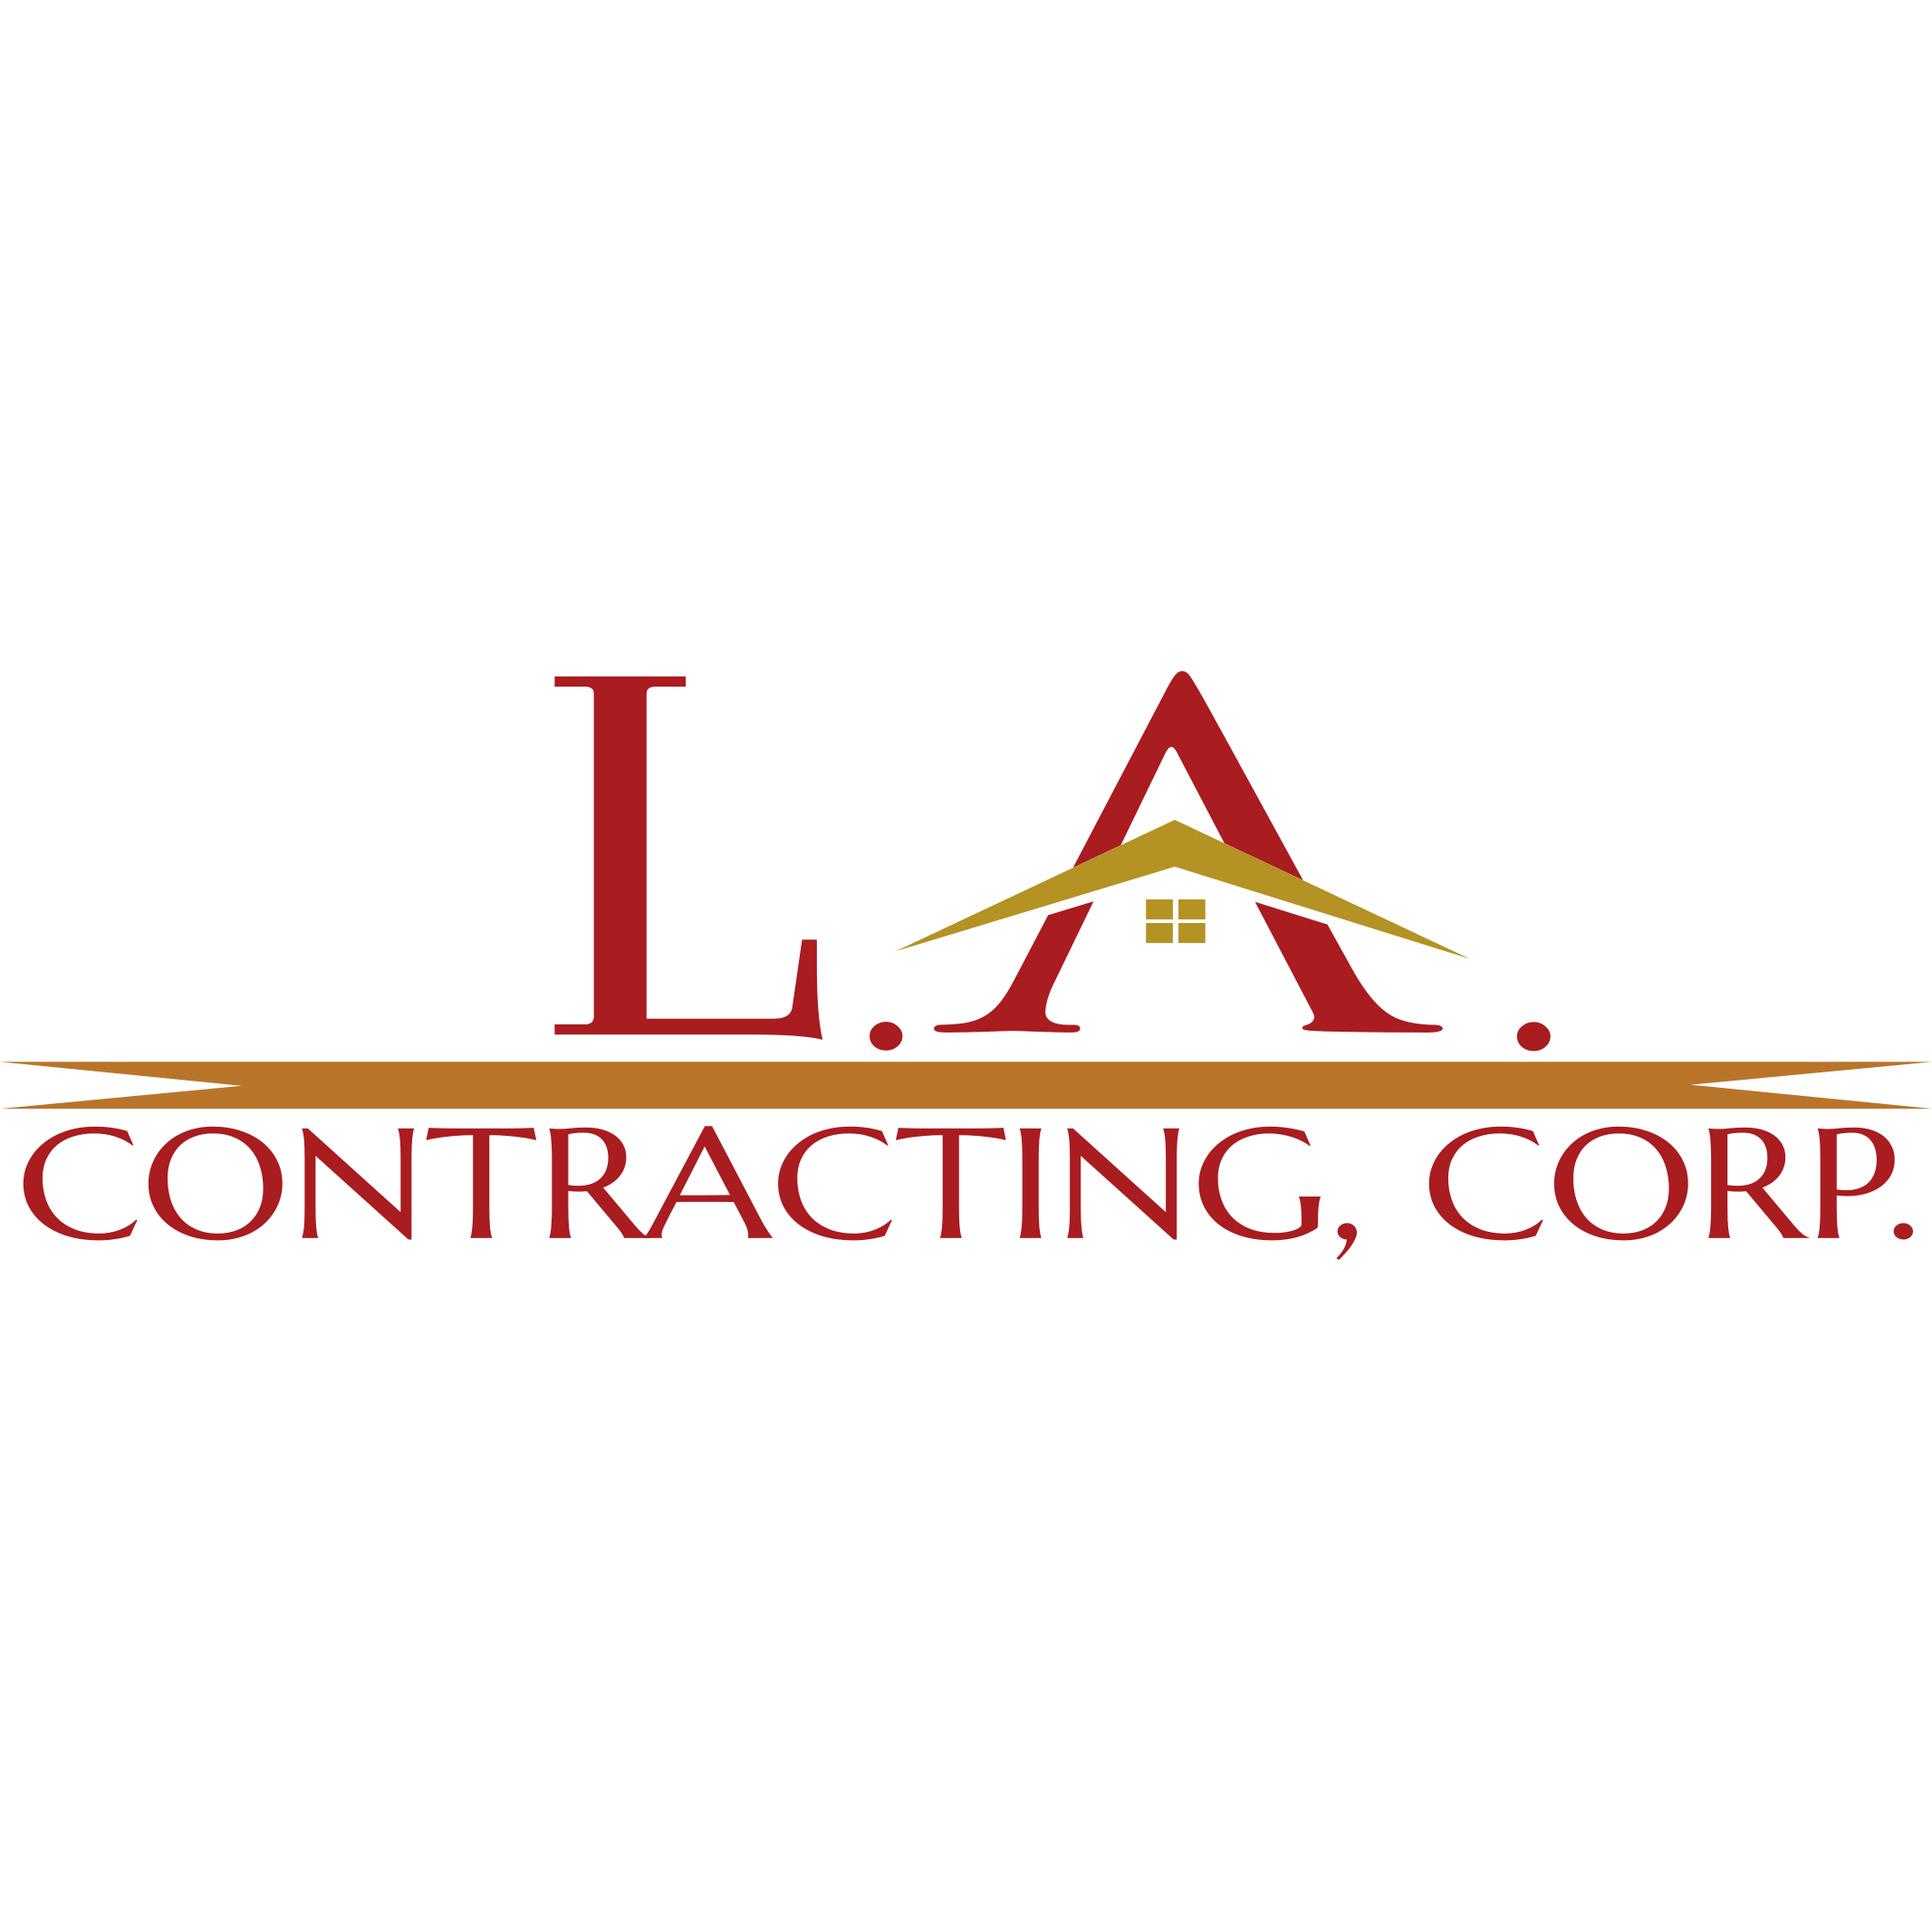 L.A. CONTRACTING, CORP. Logo